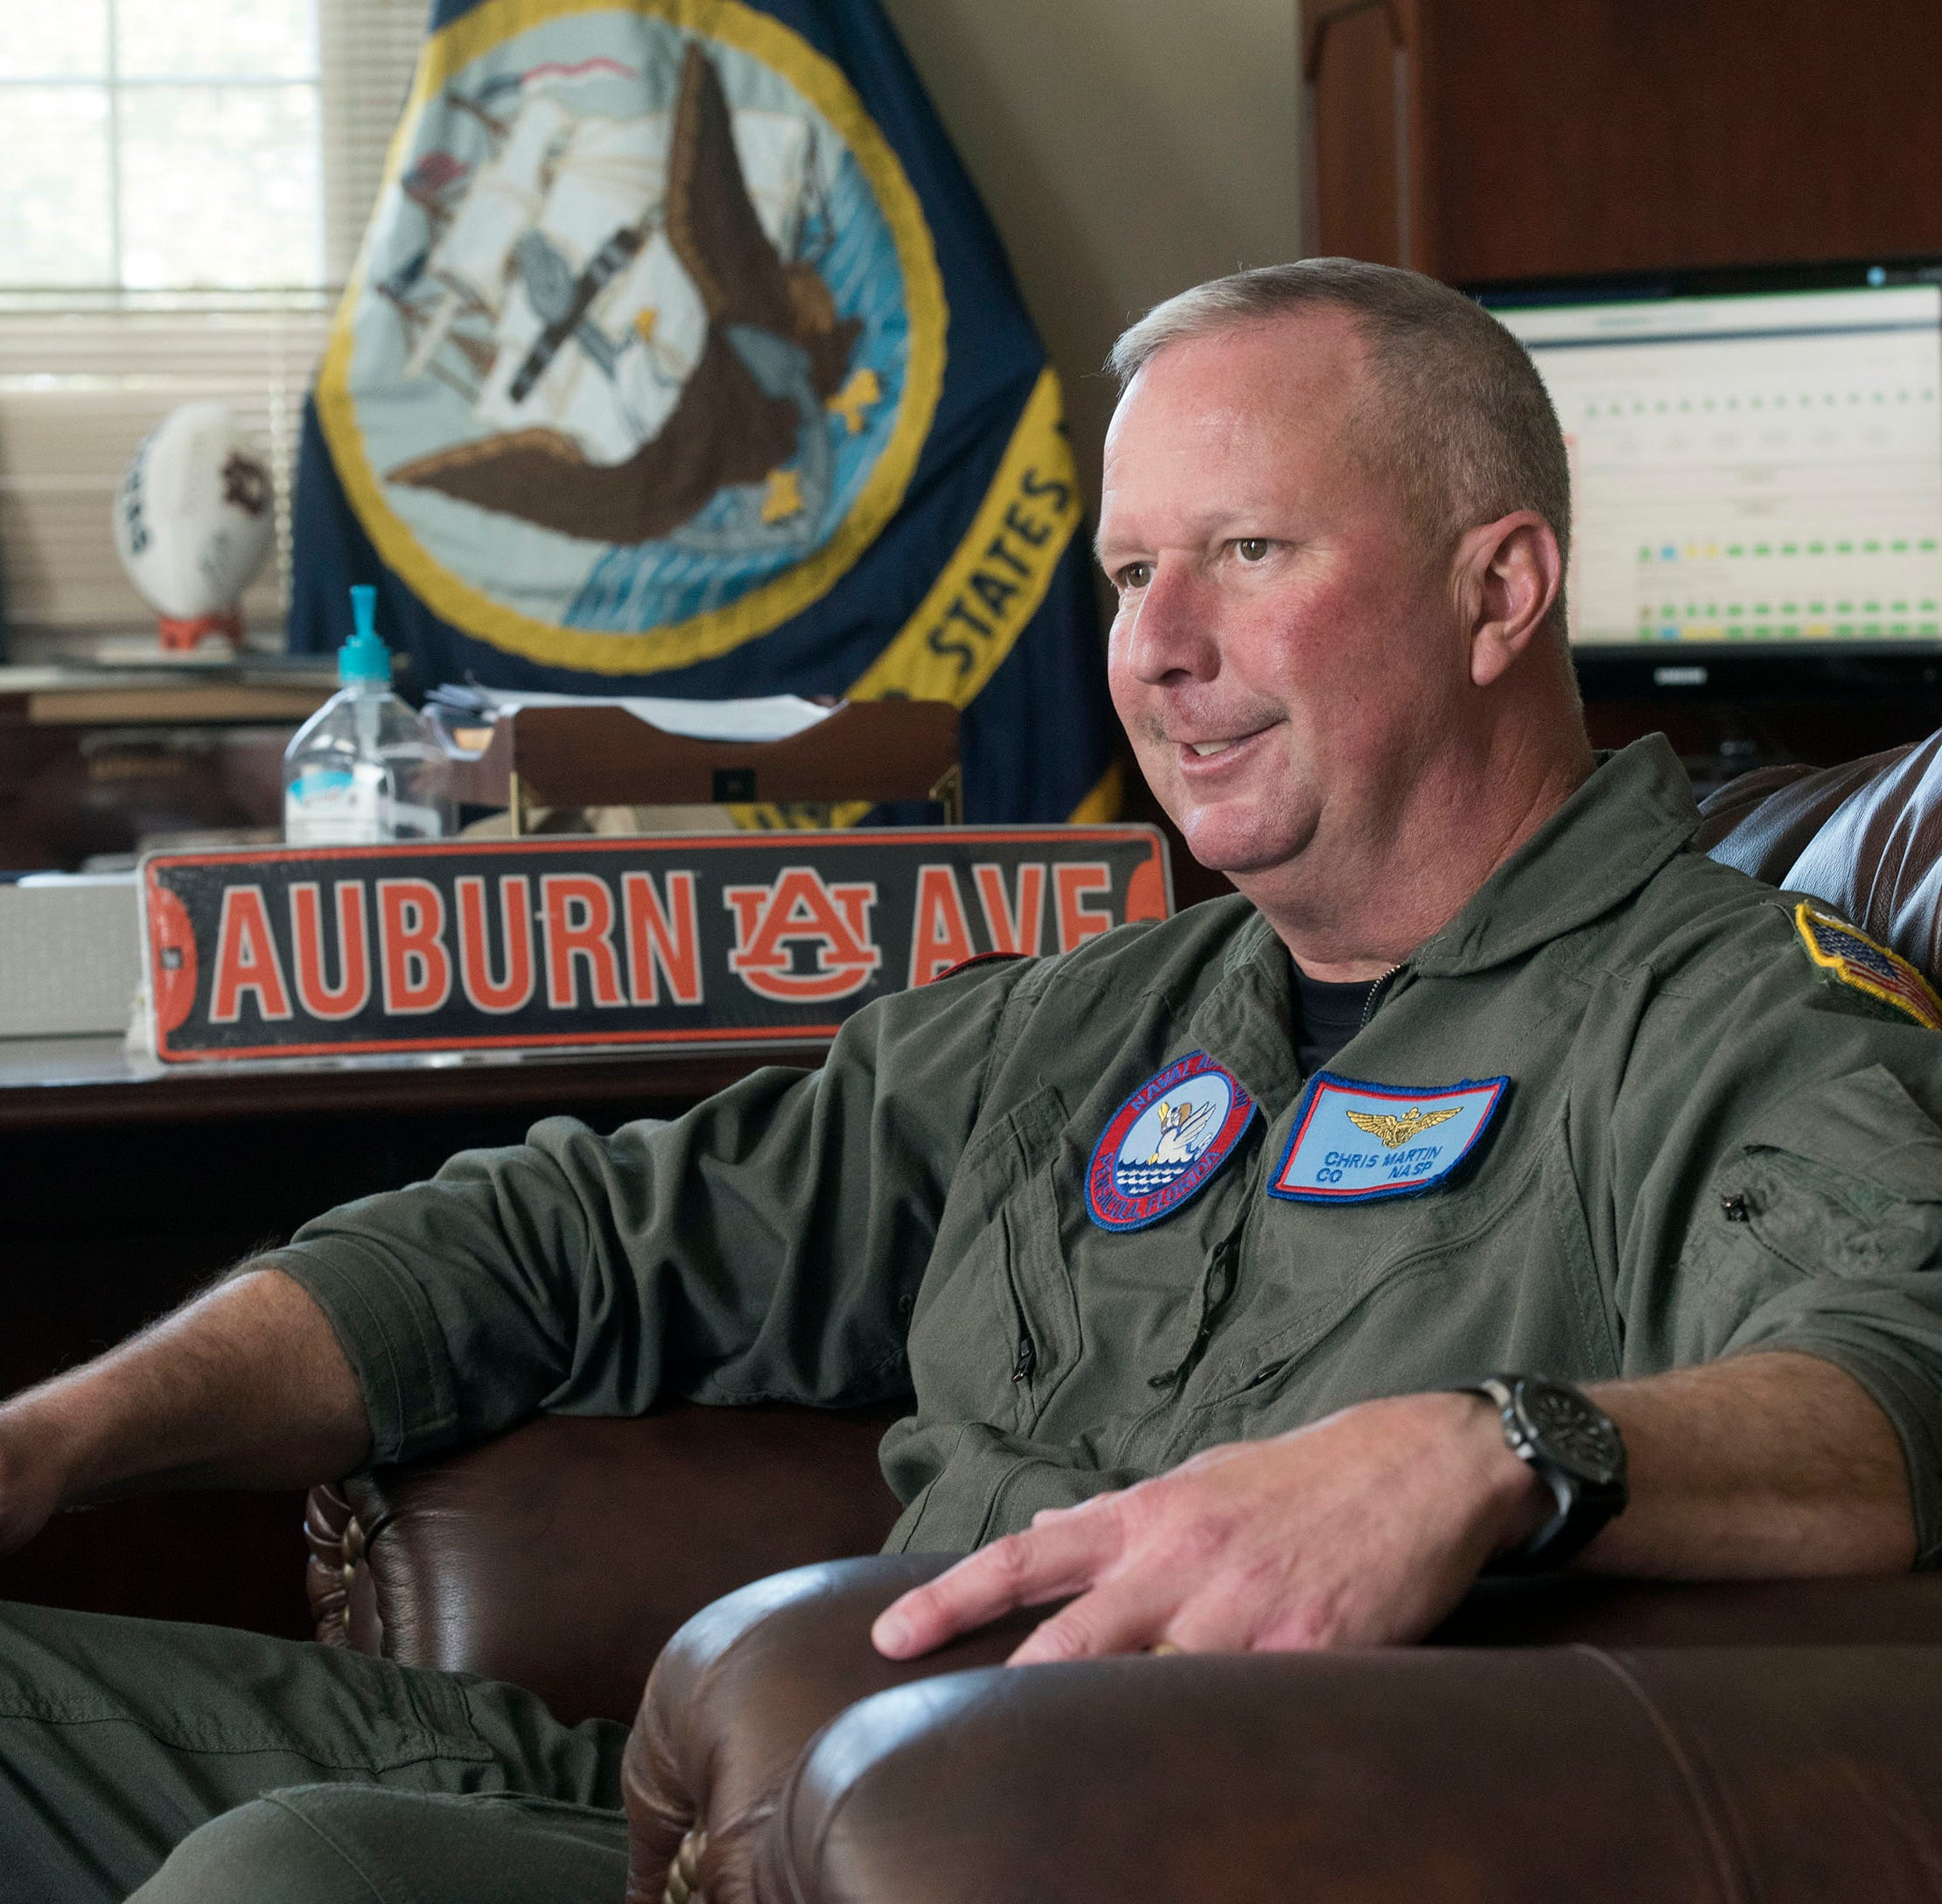 Naval Air Station Pensacola commander prepares to say goodbye after three years at helm